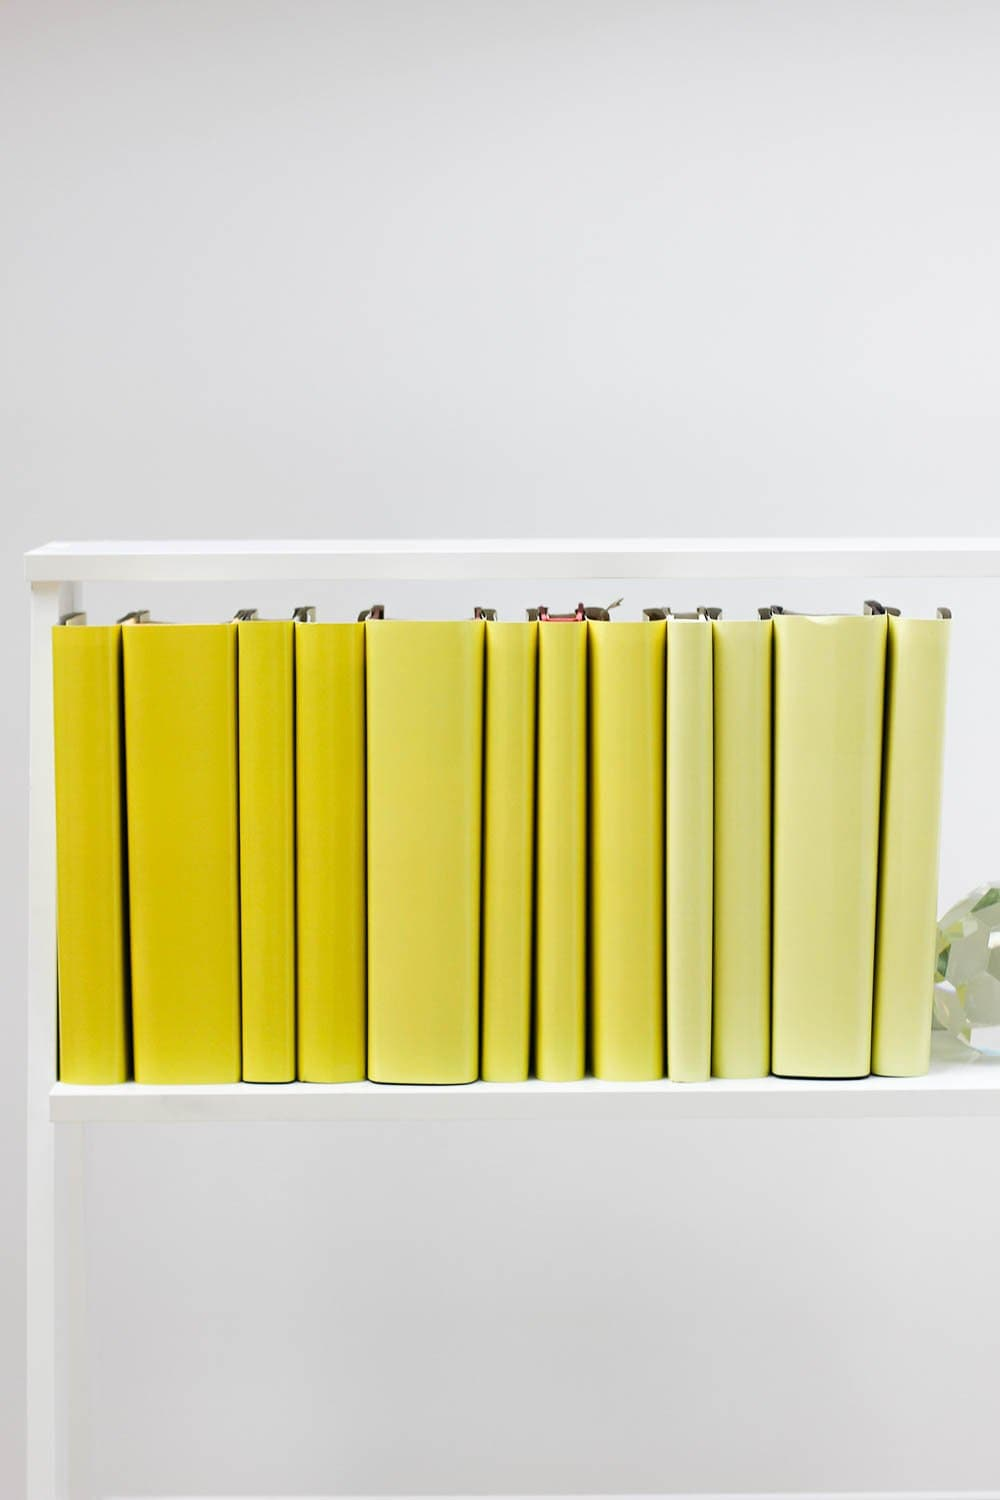 Set of styled yellow books made with yellow book covers